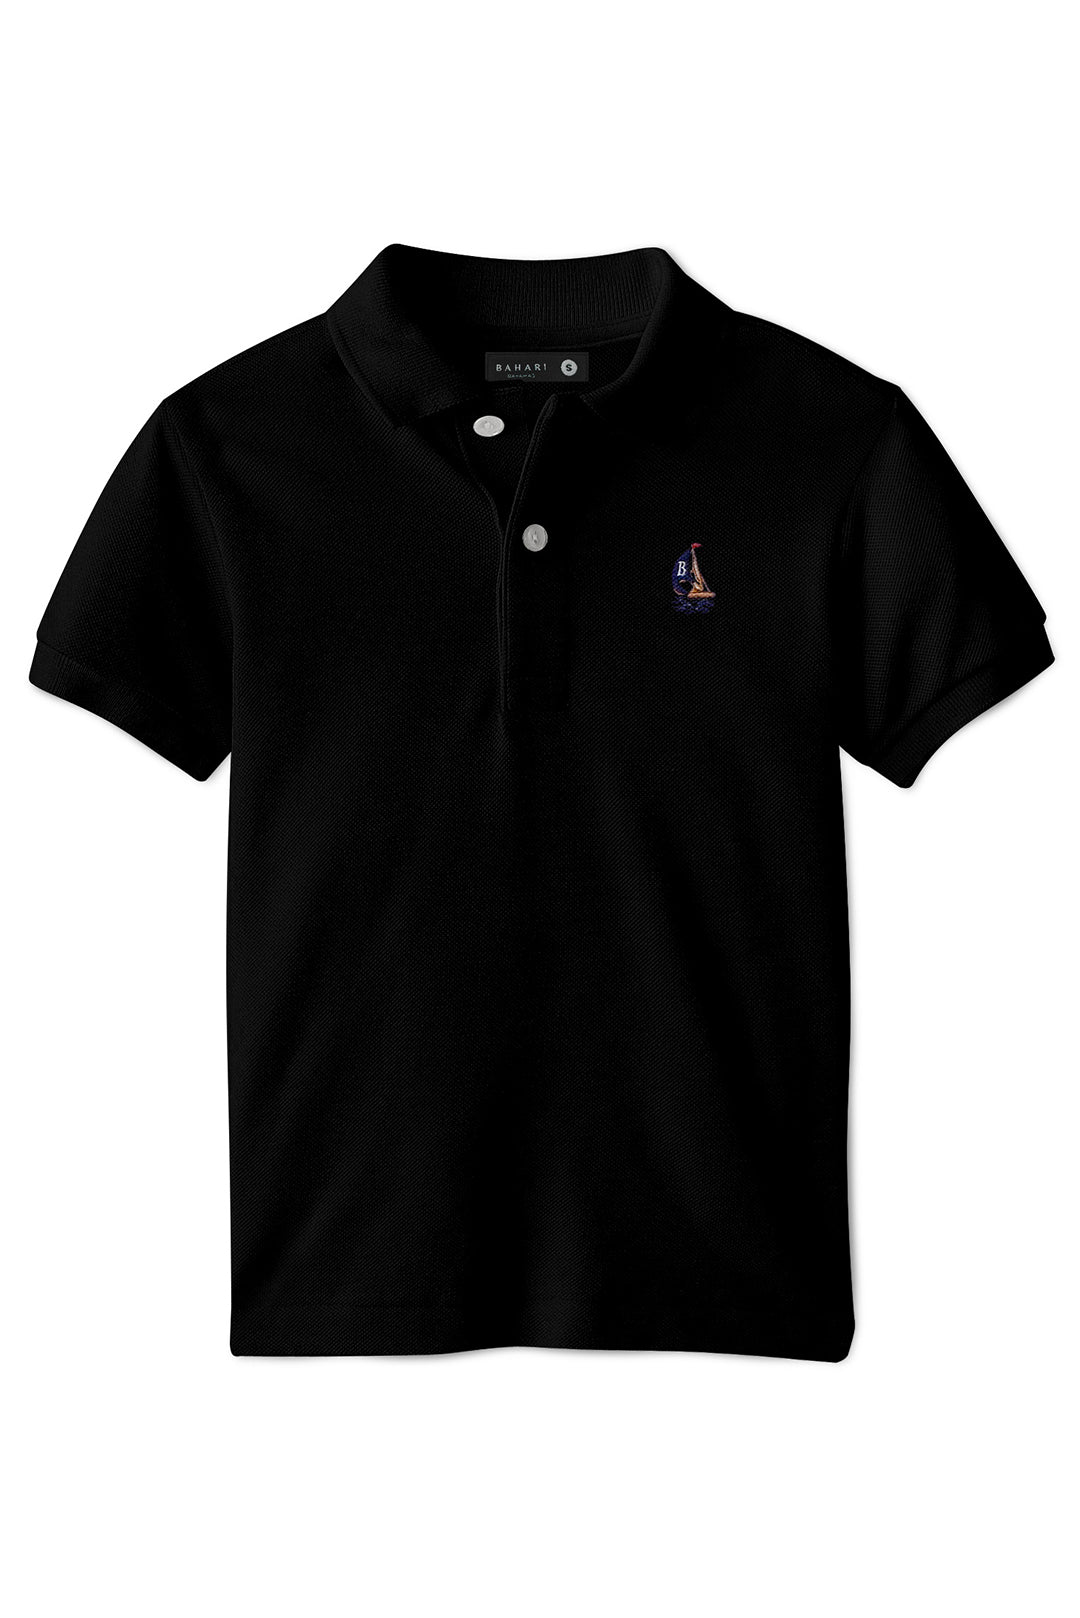 THE CLASSIC POLO- BLACK